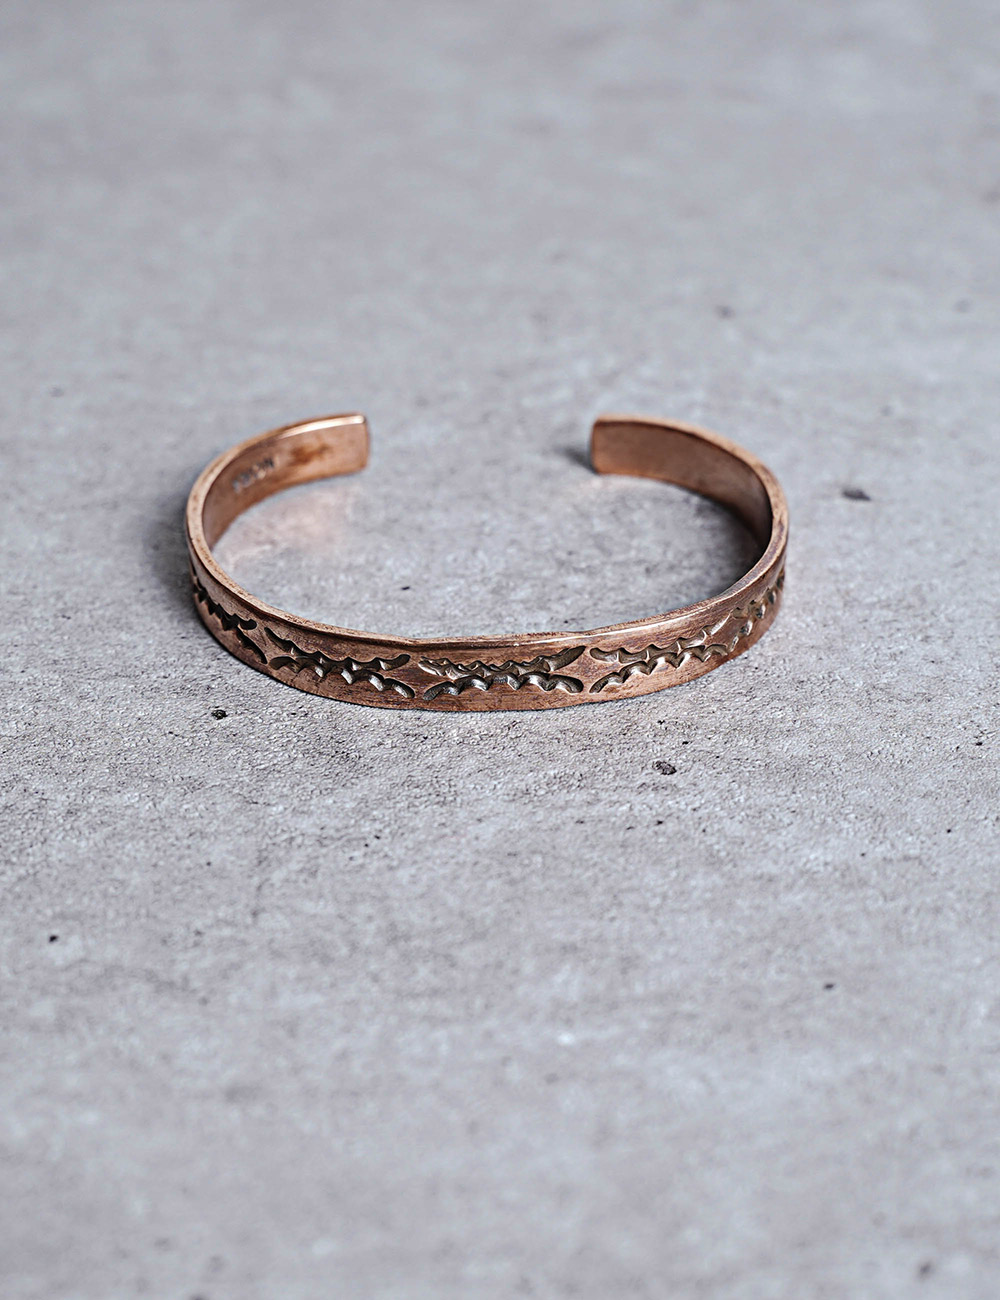 NATIVE AMERICAN JEWELRY : NORA BILL - COPPER BRACELET